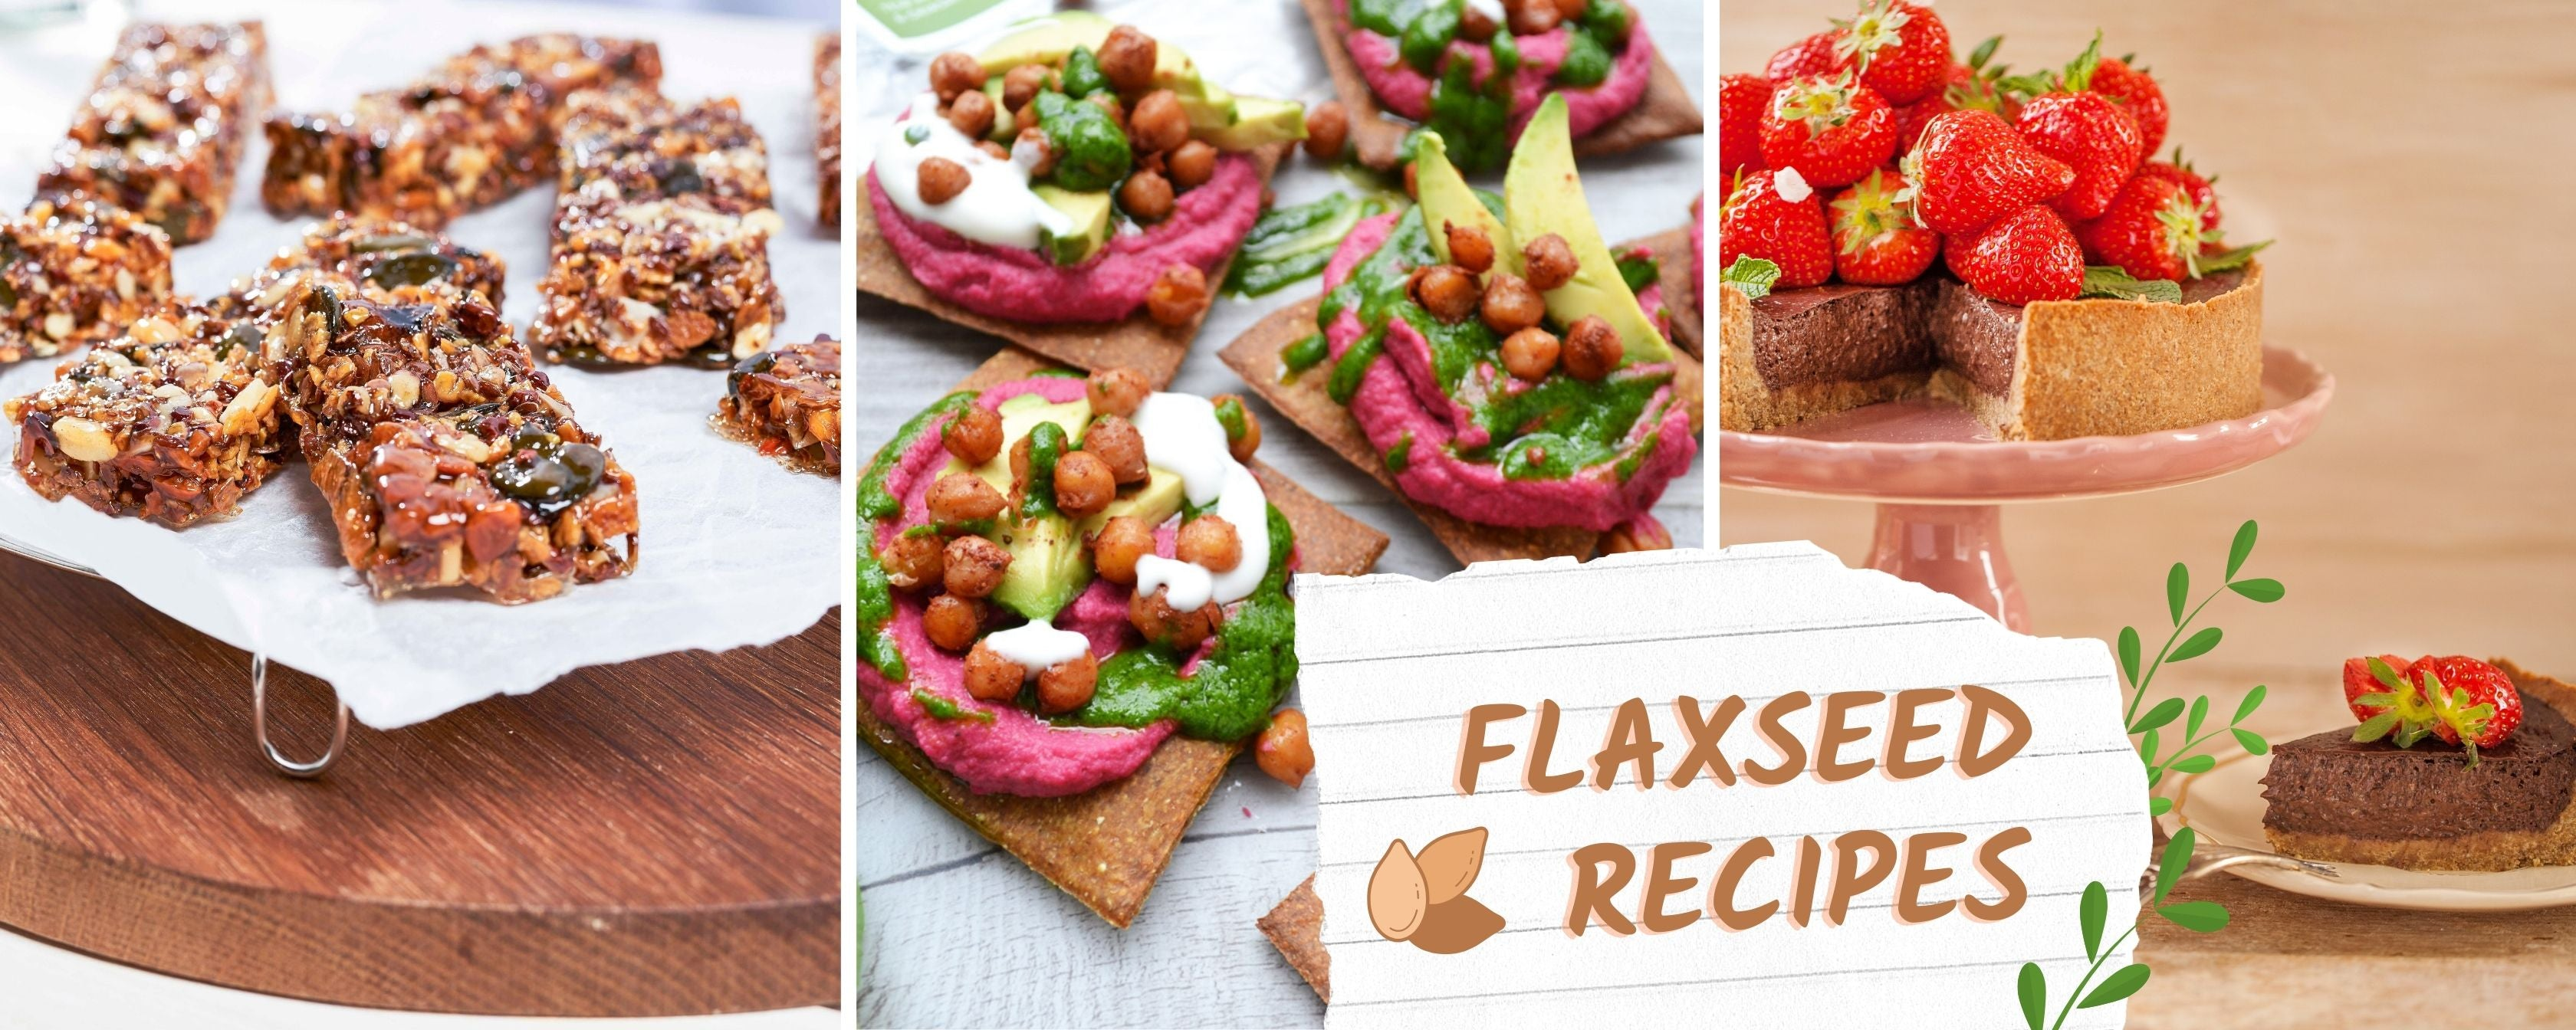 Flaxseed recipes for cooking and baking